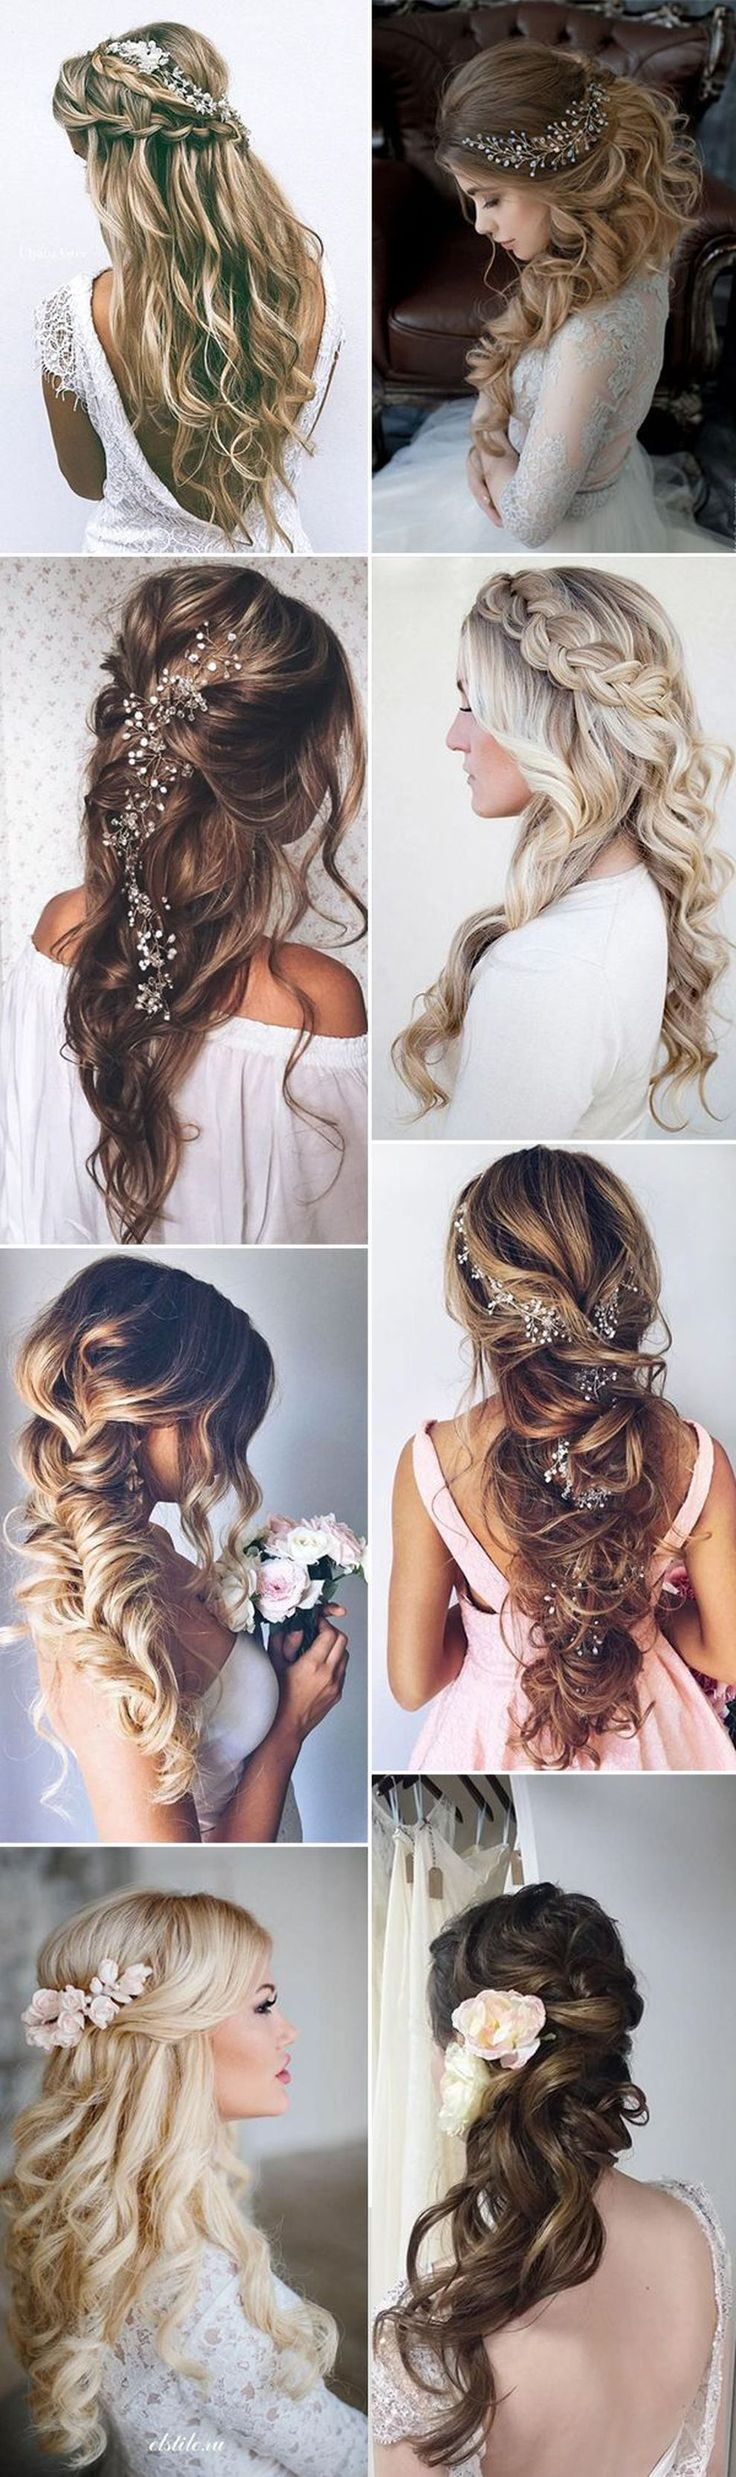 best my style images on pinterest wedding hair styles